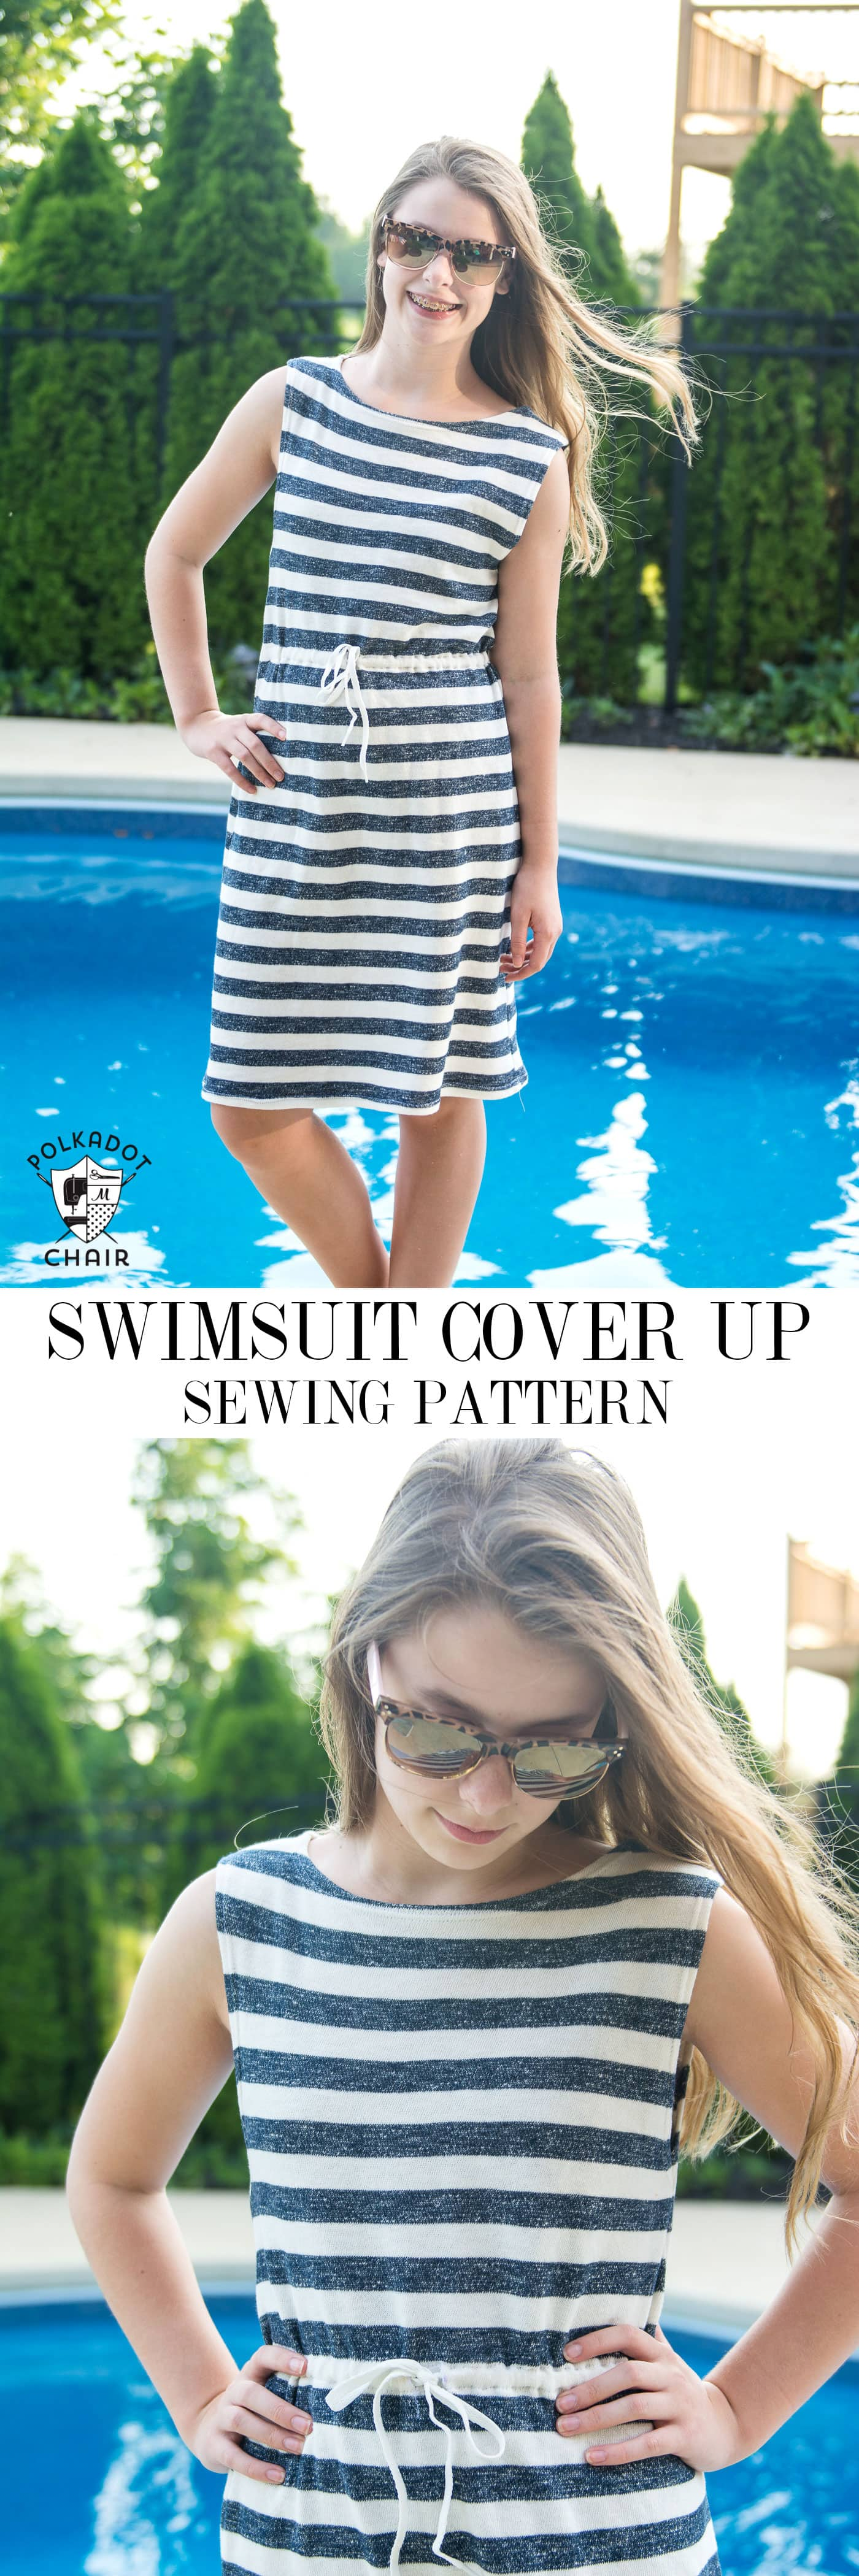 Easy Summer Sundress or Swim Cover up sewing pattern.